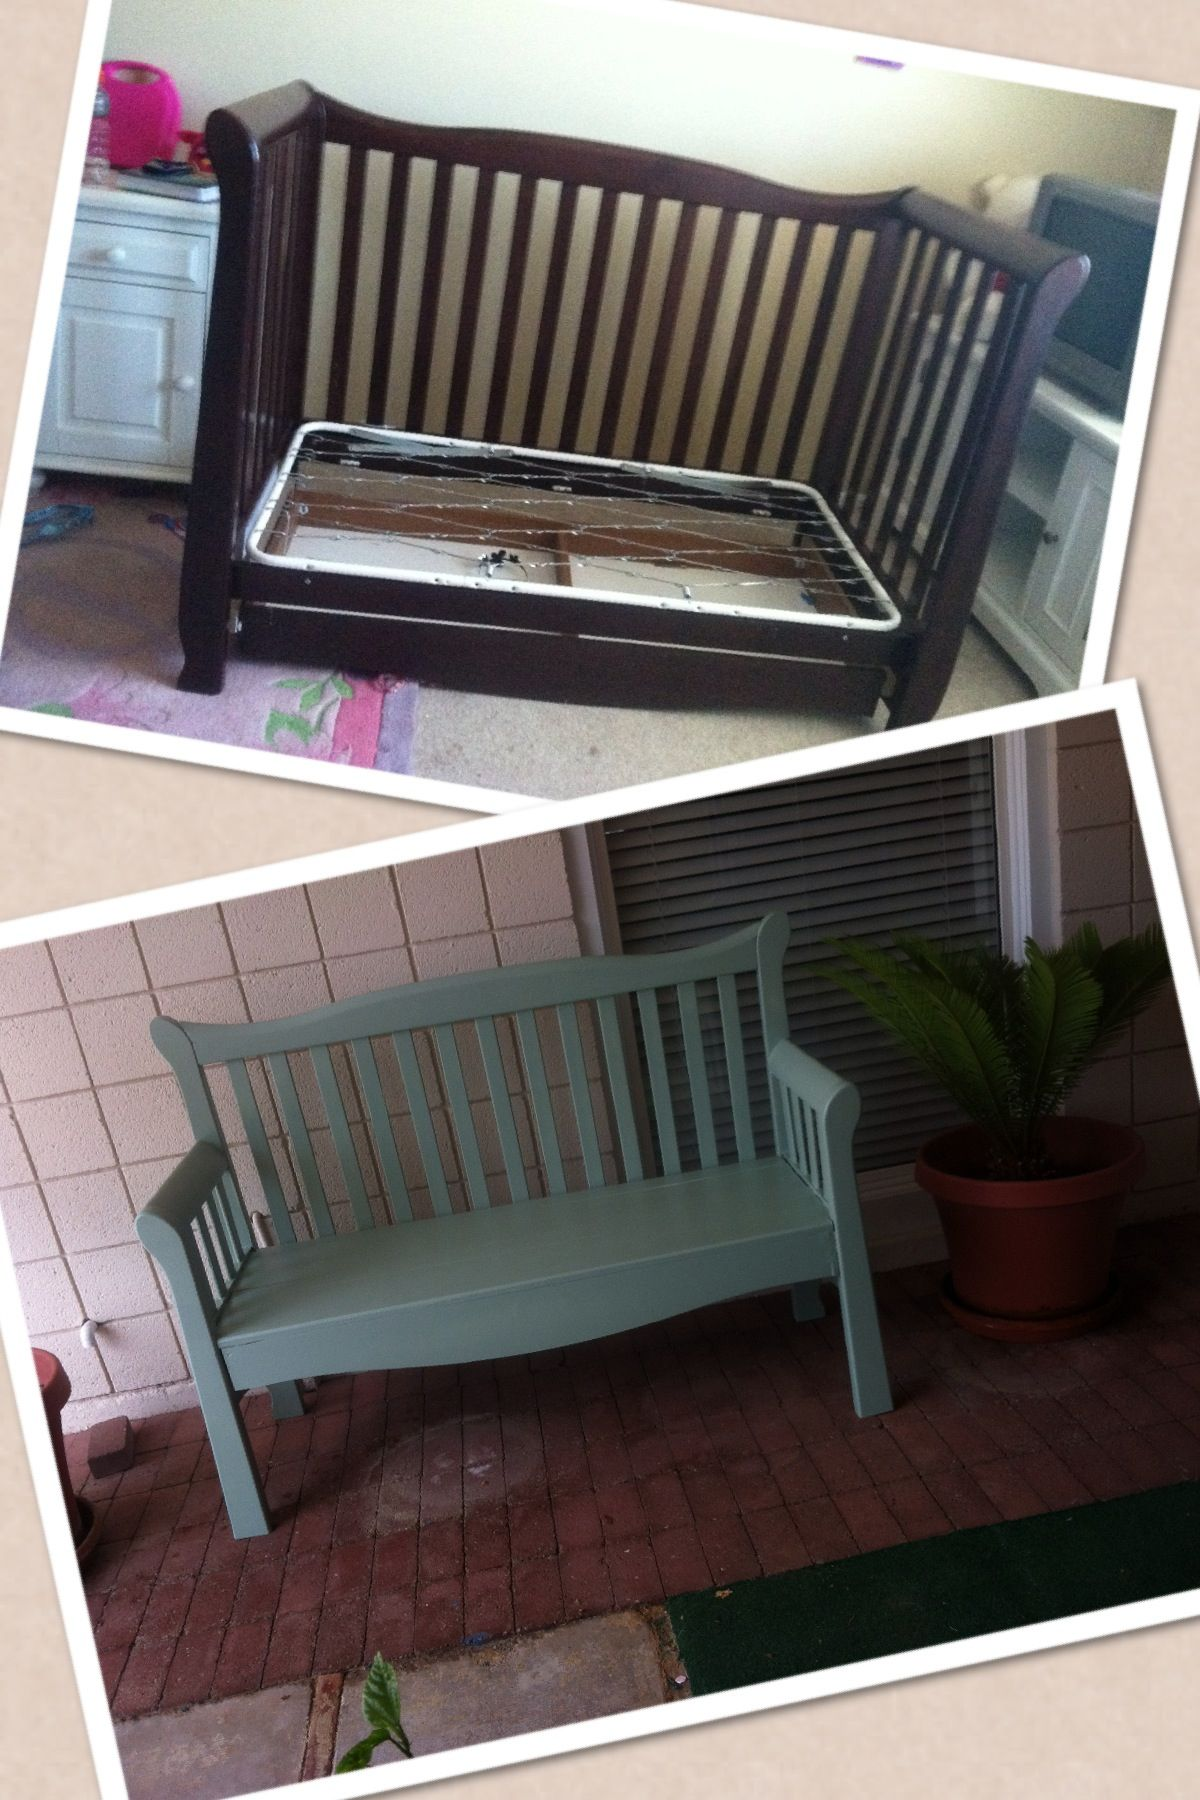 Bench Out Of Headboard Build A Park Bench From An Old Baby Crib Diy Wood Work